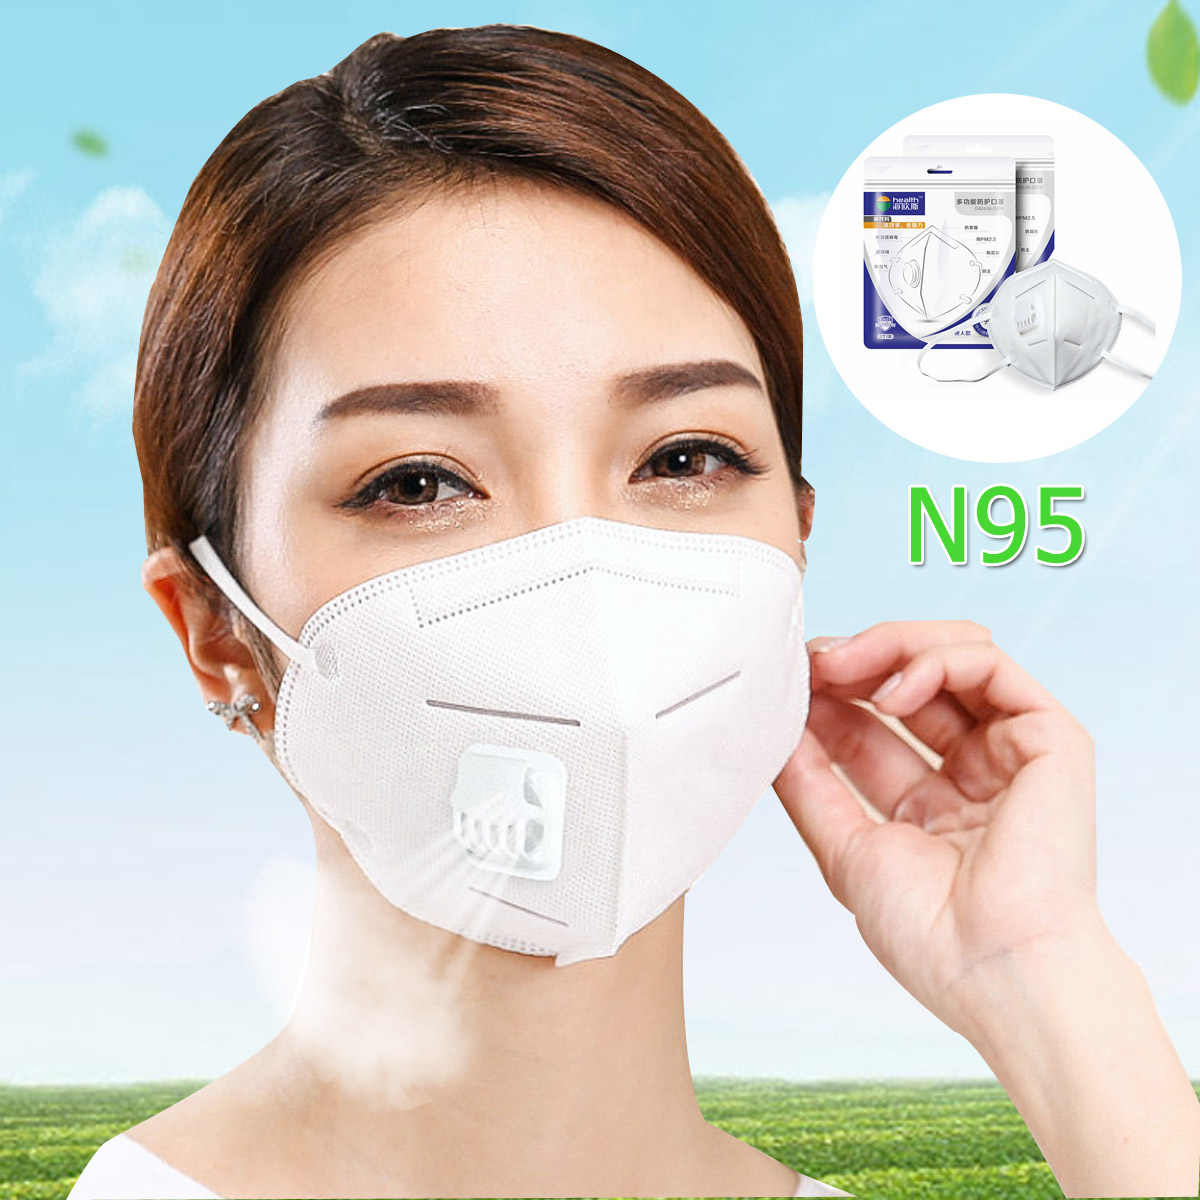 4 Air Mask Kifit Anti Dustproof Breathing Valve Filter Pollution Fog N95 Pathogen Anti-virus 5 1pc Layer